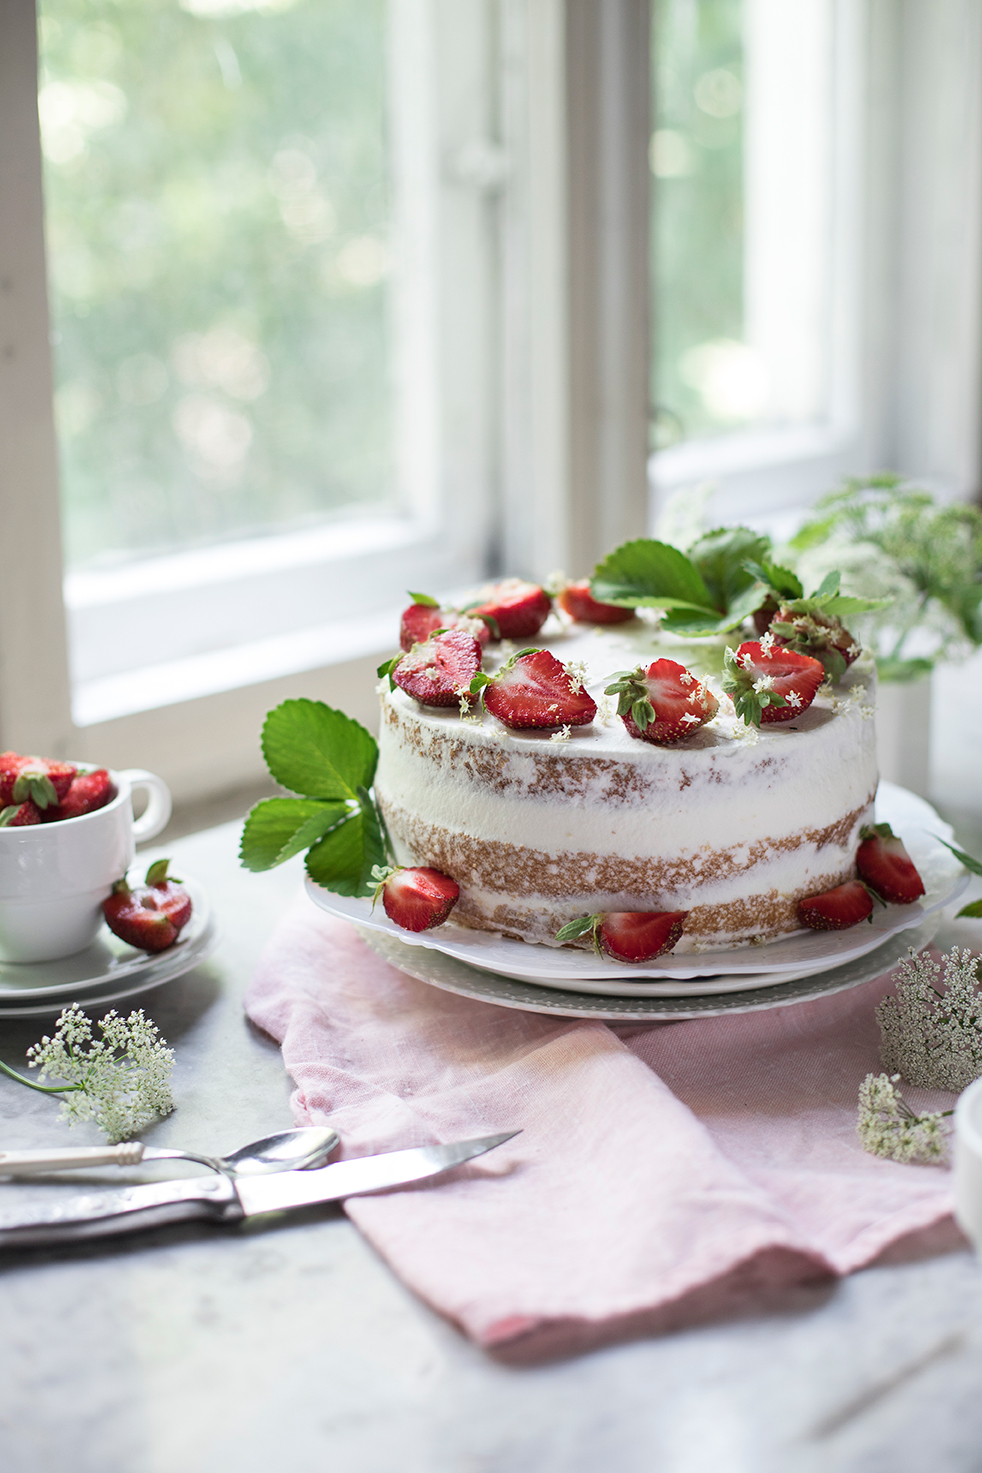 Strawberry and elder flower layer cake with ricotta cream filling by Candy Company